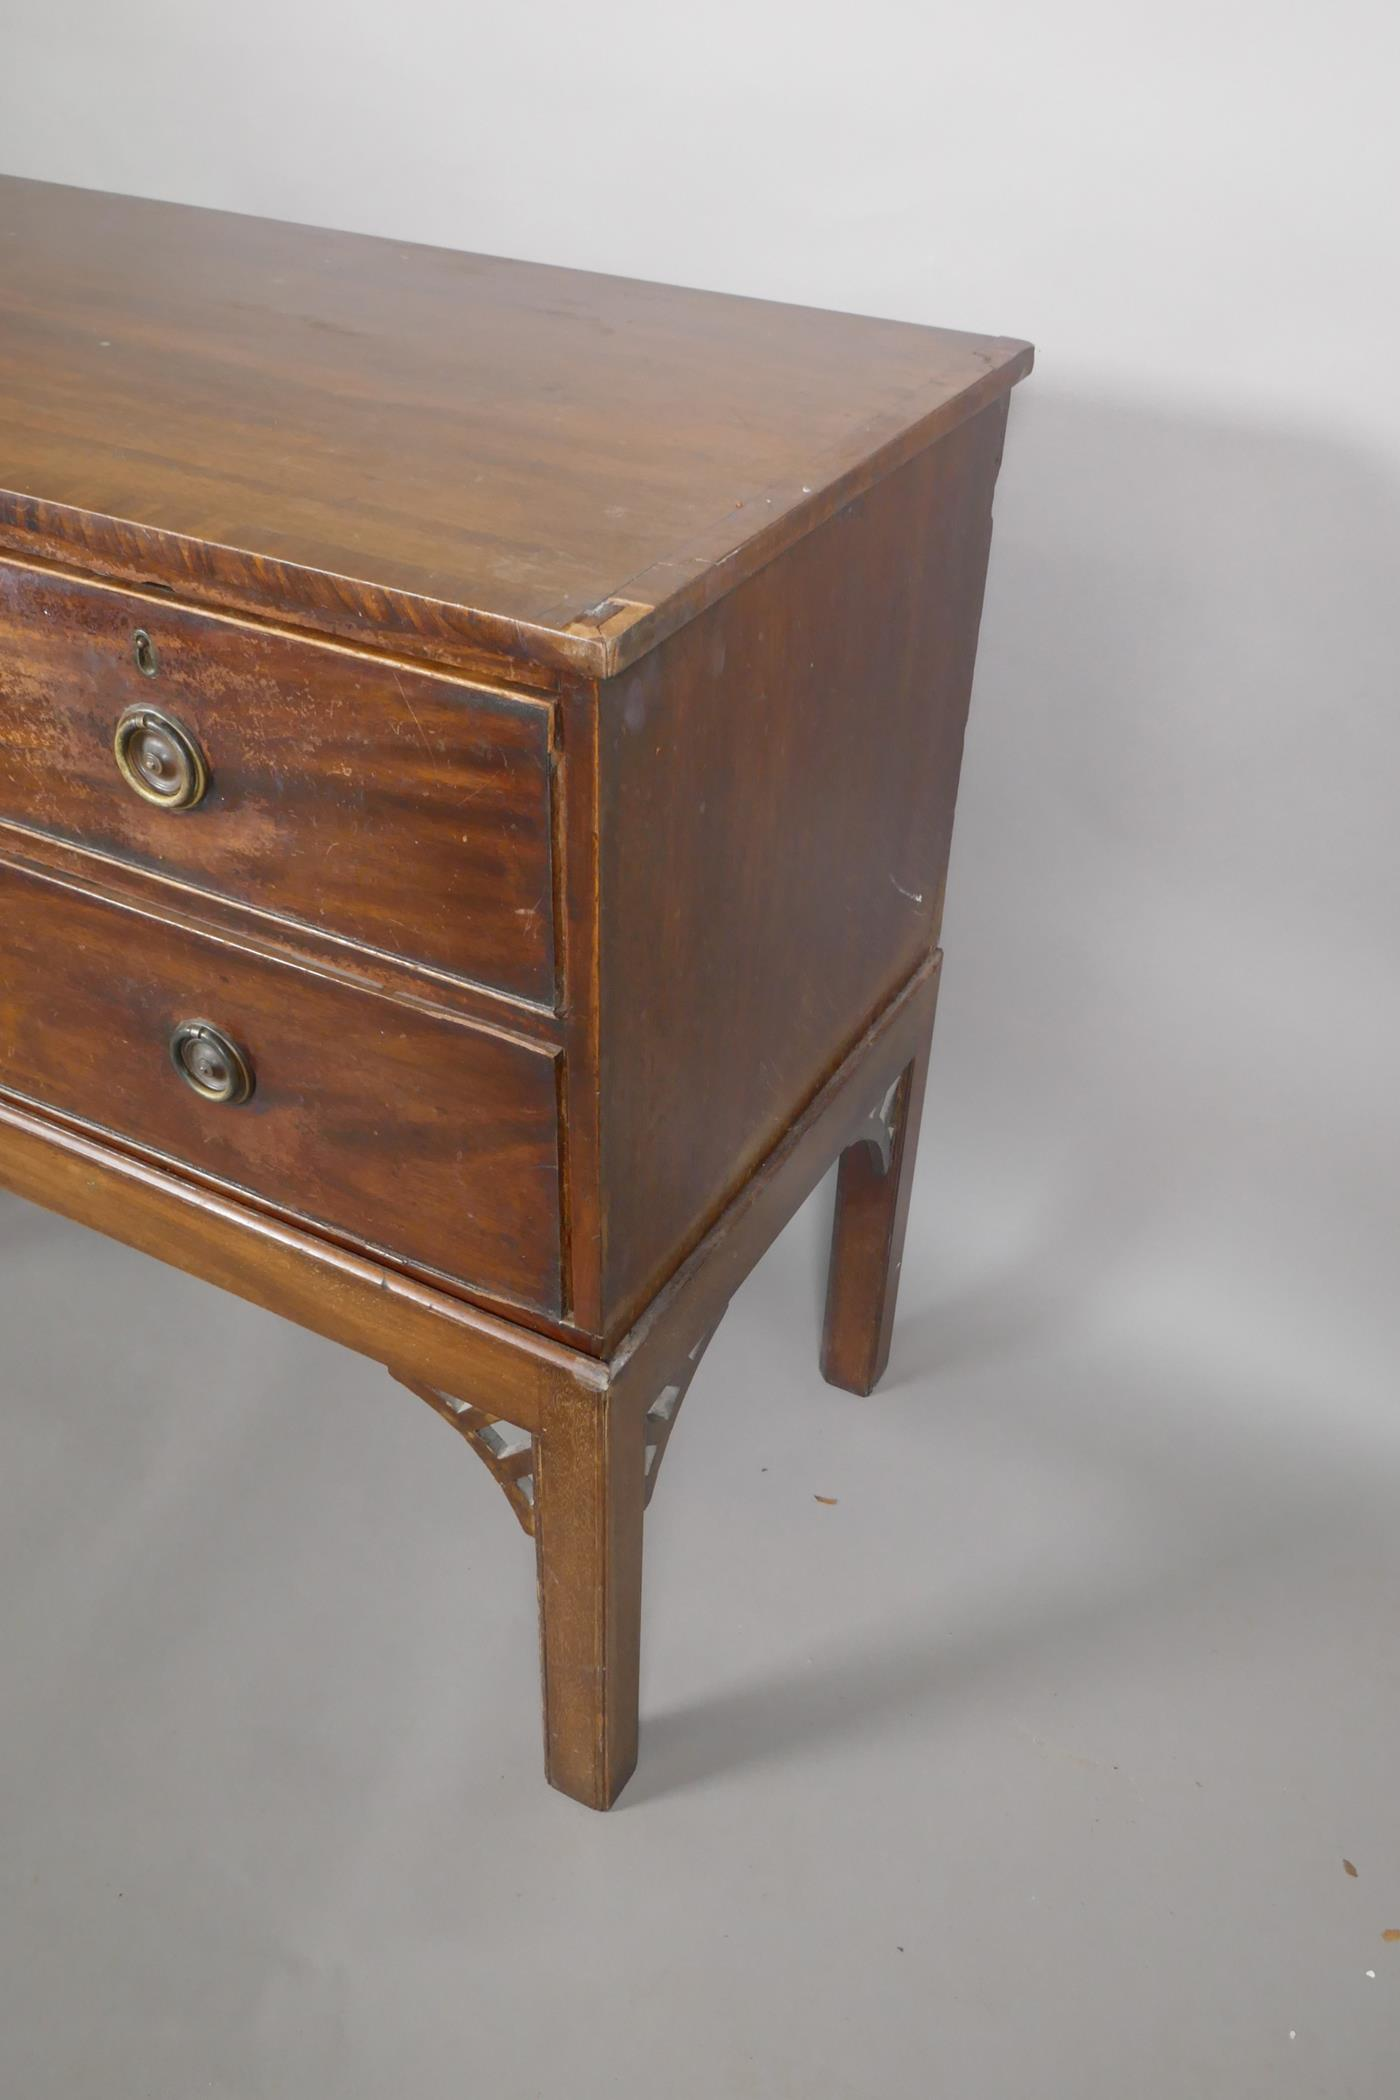 """A mahogany three drawer chest of drawers on an adapted stand, 32"""" high, 37"""" wide, 18"""" deep - Image 3 of 3"""